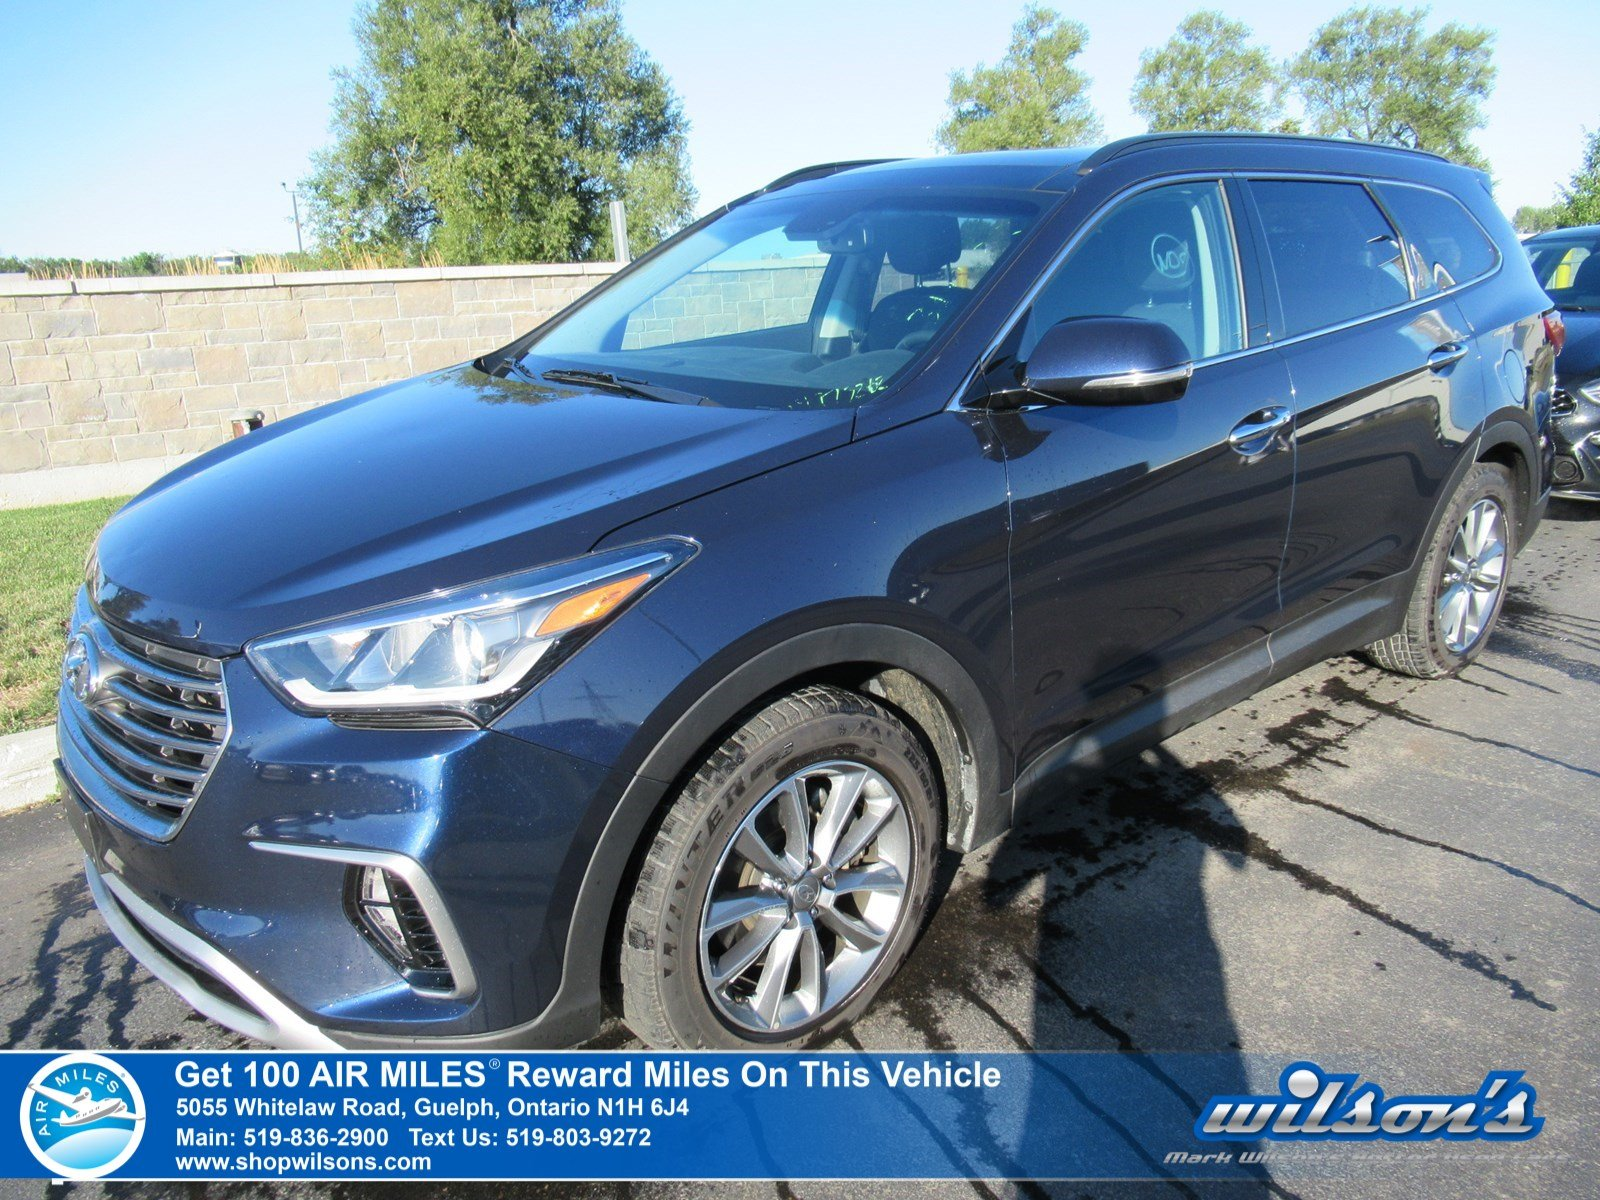 Certified Pre-Owned 2018 Hyundai Santa Fe XL Luxury Used AWD - Leather, Sunroof, Navigation, Sunroof, Heated Steering + Seats and more!